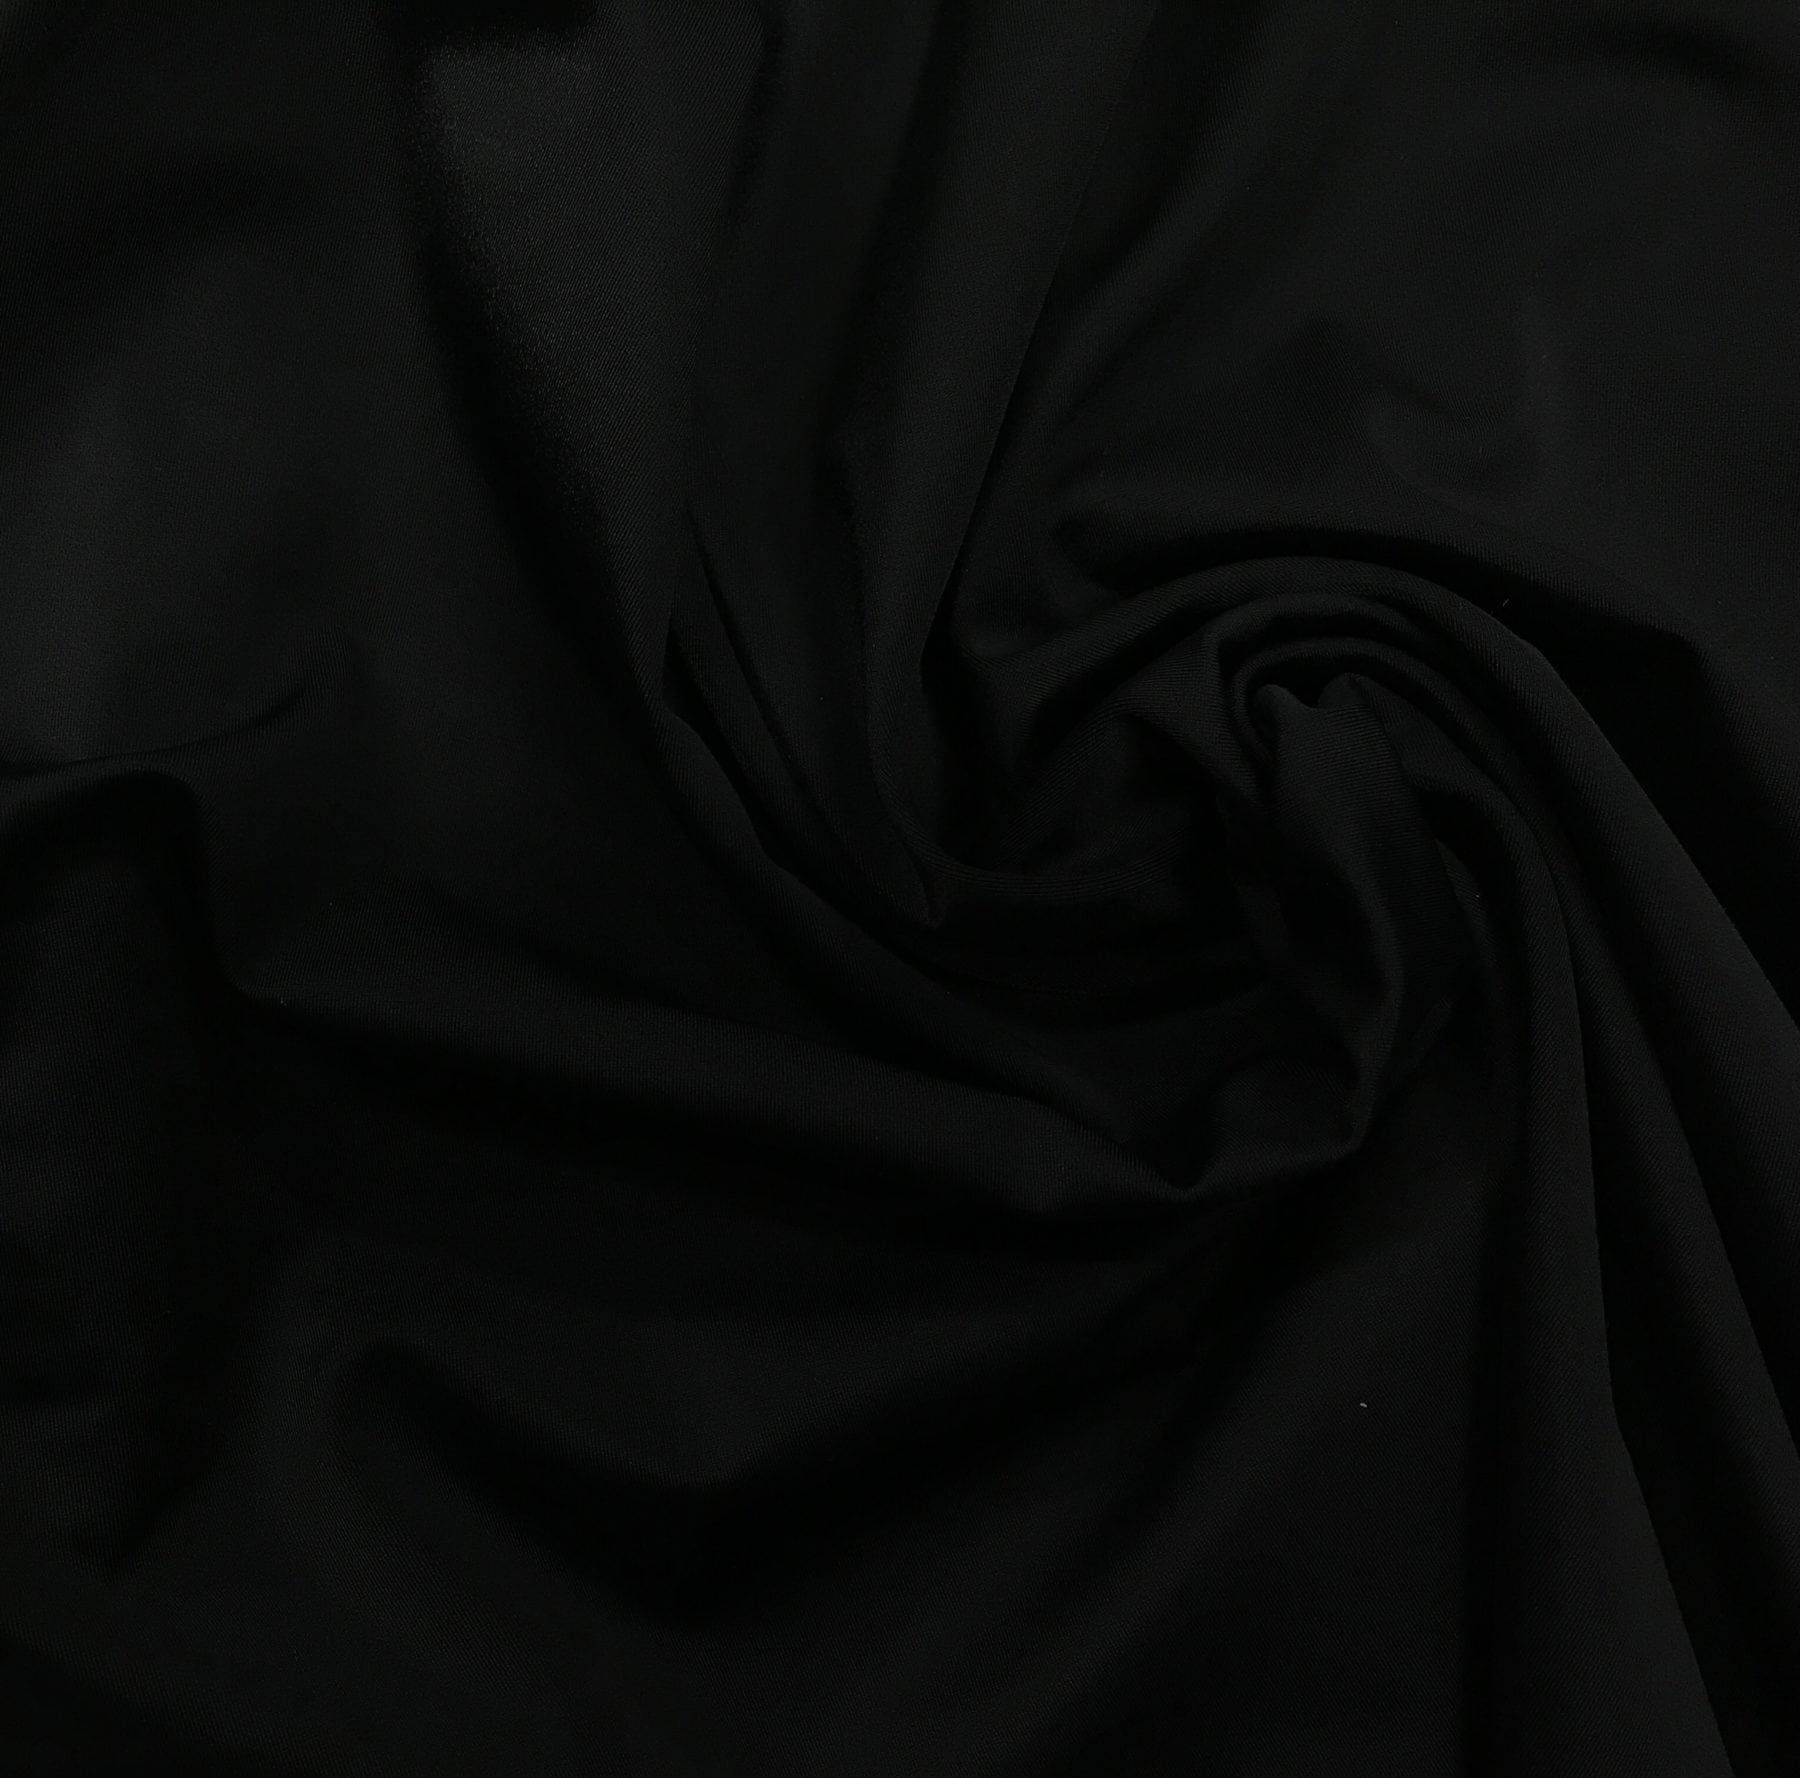 performance wear fabric, black yoga fabric, stretch yoga fabric, spandex fabric for yoga wear, solid stretch fabric, athletic knit for yoga, athletic kint for performance sports